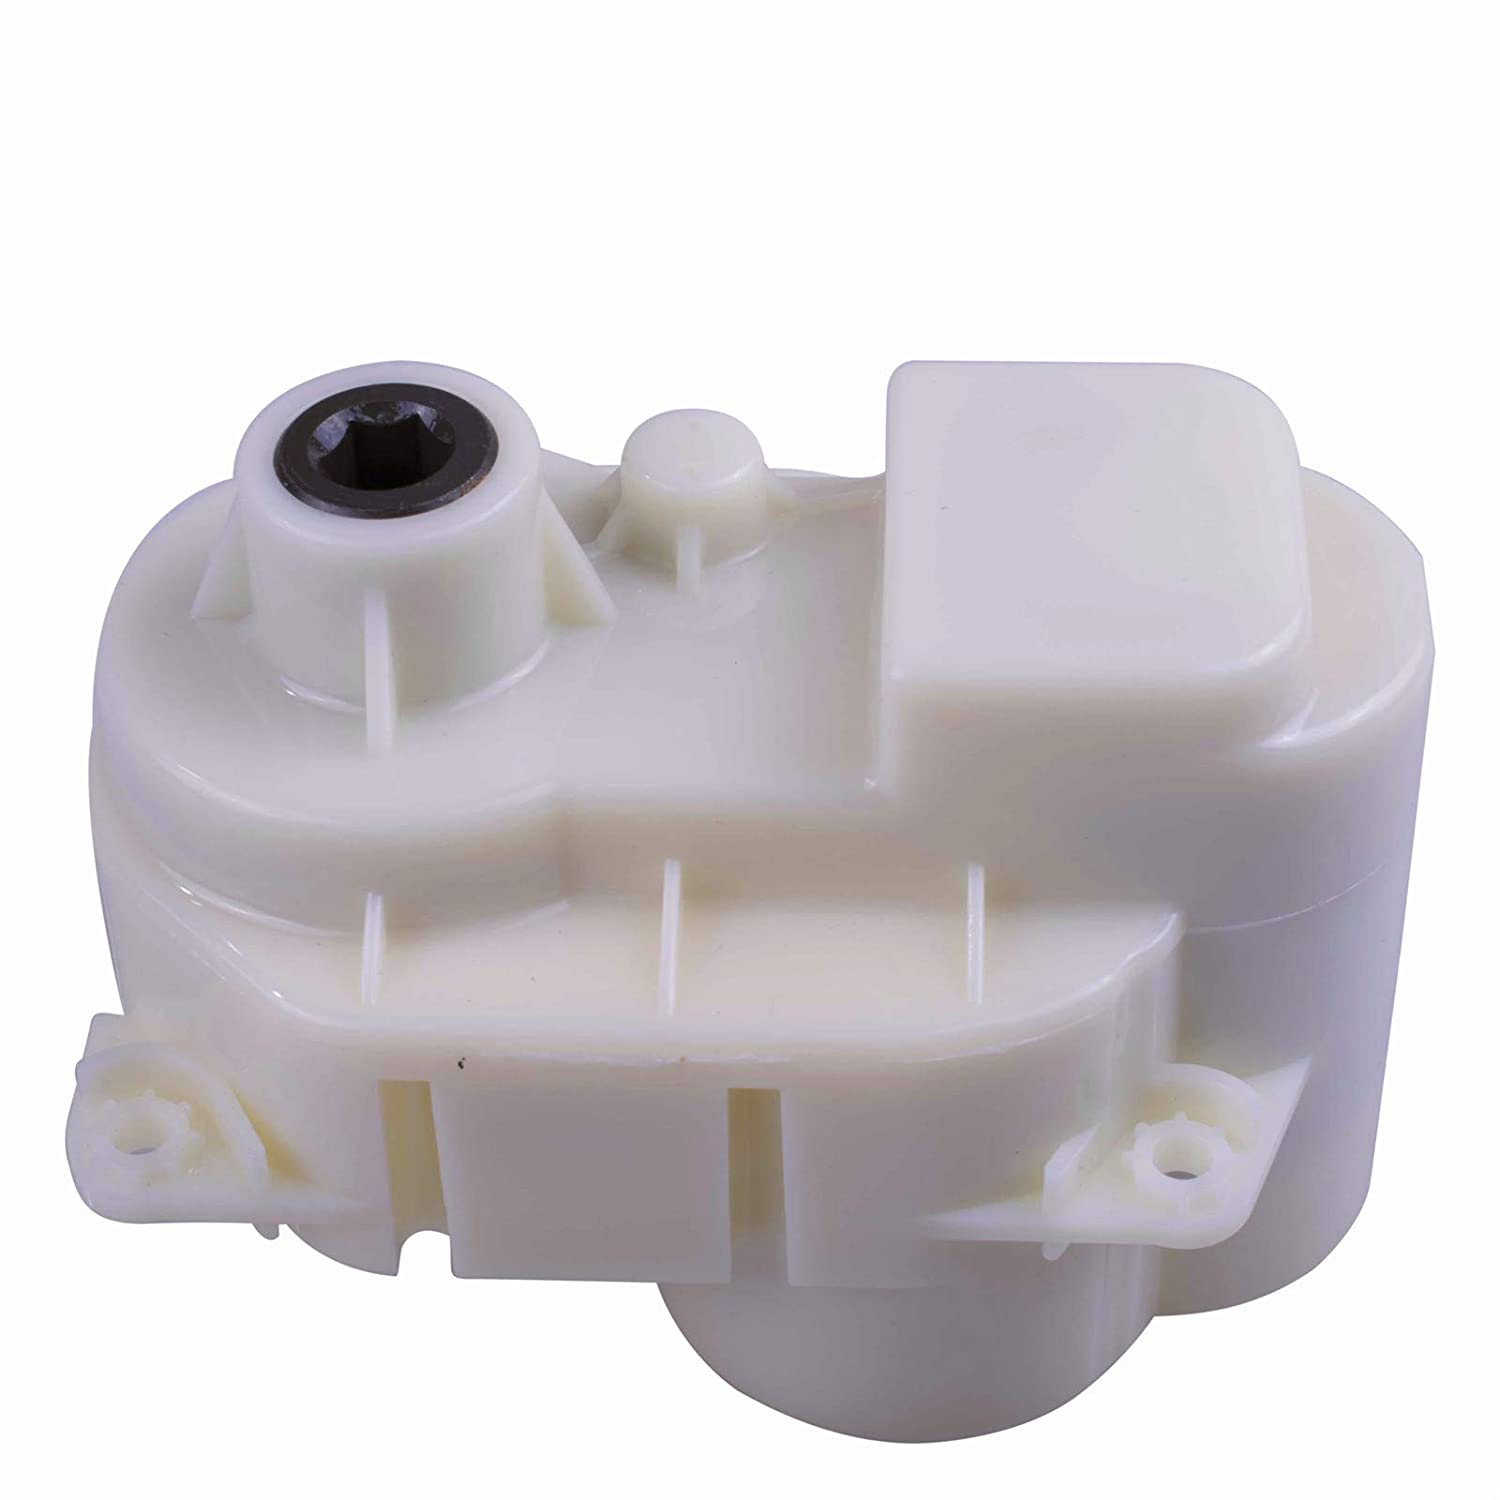 NEW Refrigerator Ice Auger Gear Motor Replacement for Whirlpool Sears AP5985114 PS11723175 W10822606